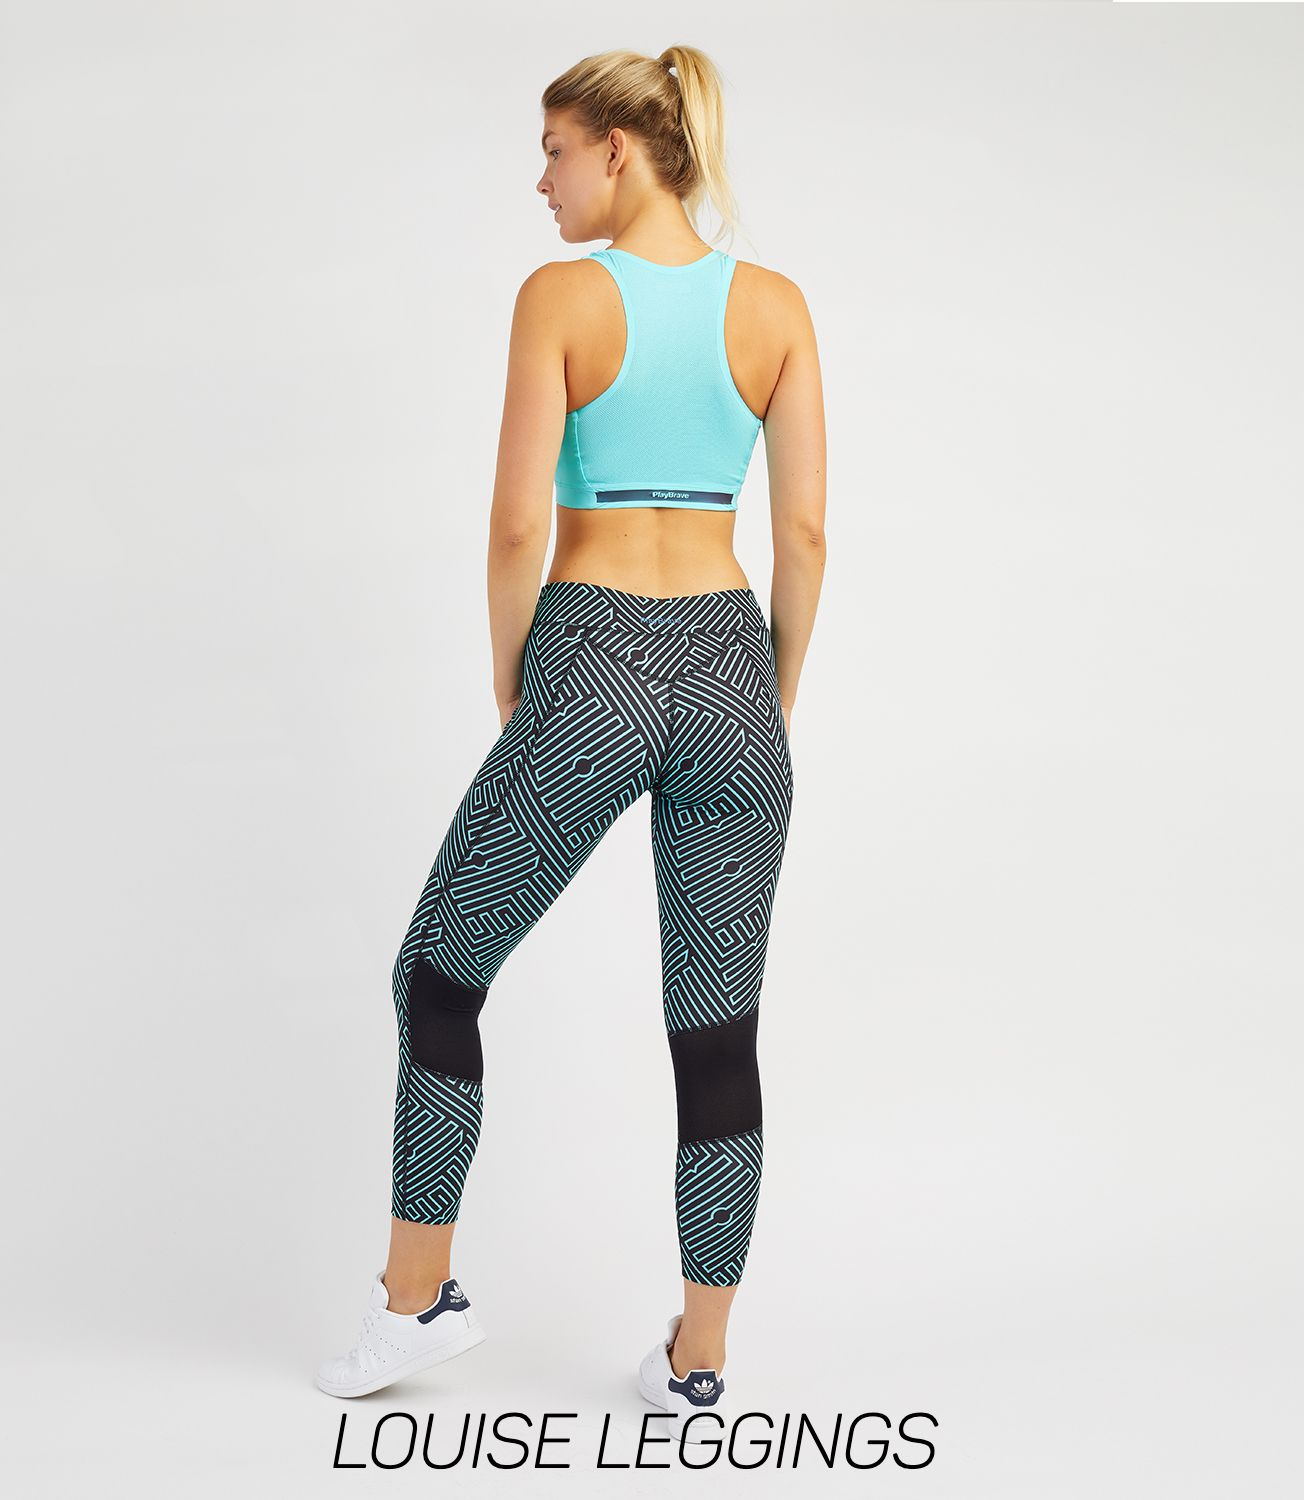 PlayBrave Champion Leggings